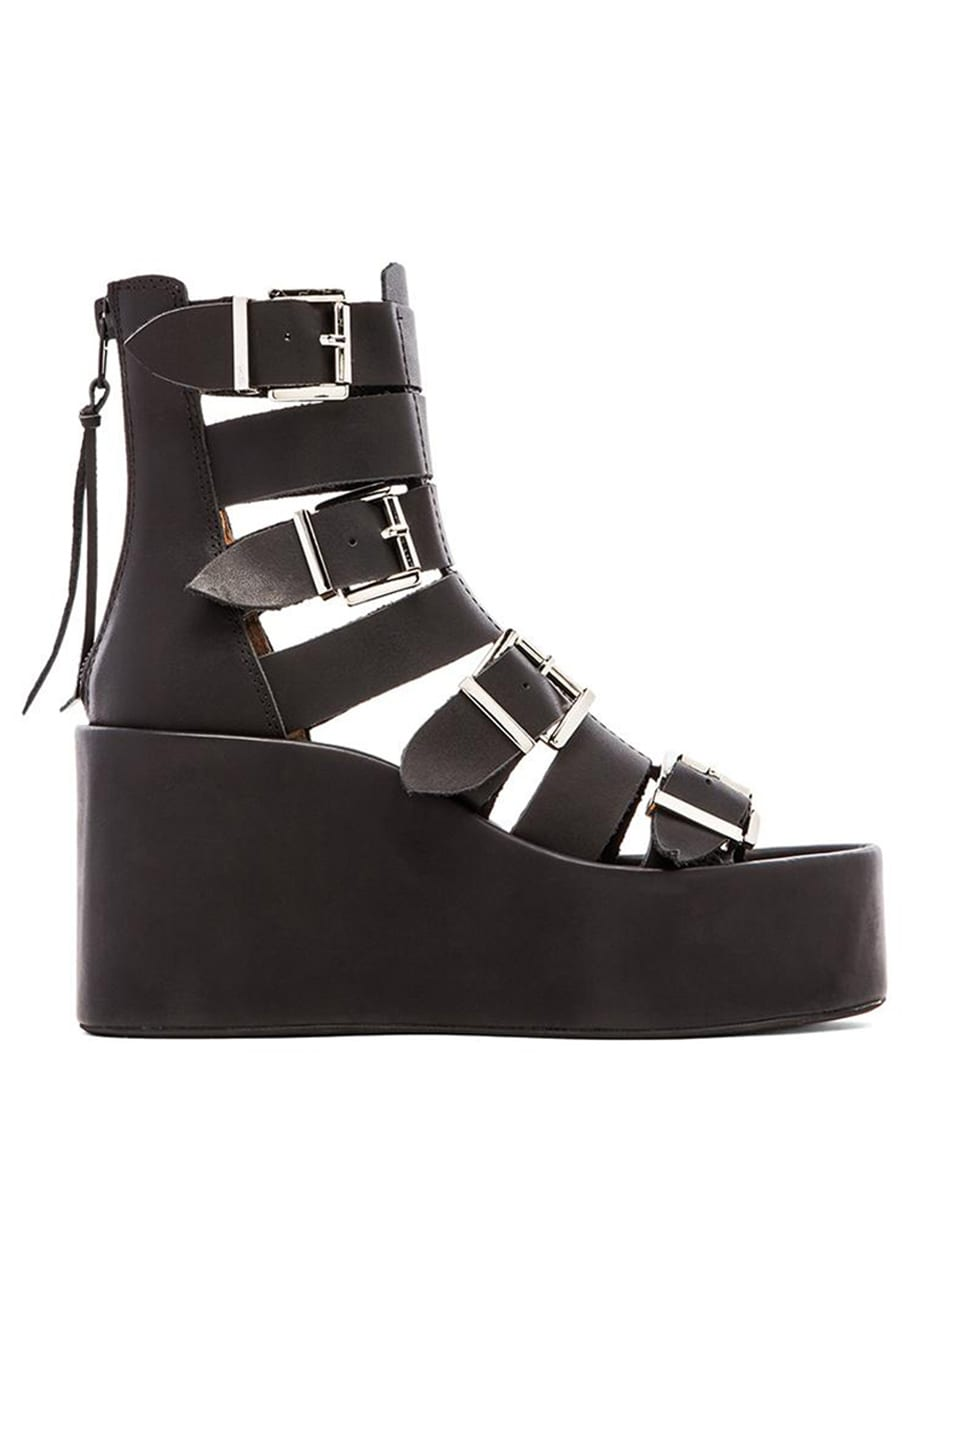 Jeffrey Campbell Thetis Sandal in Black